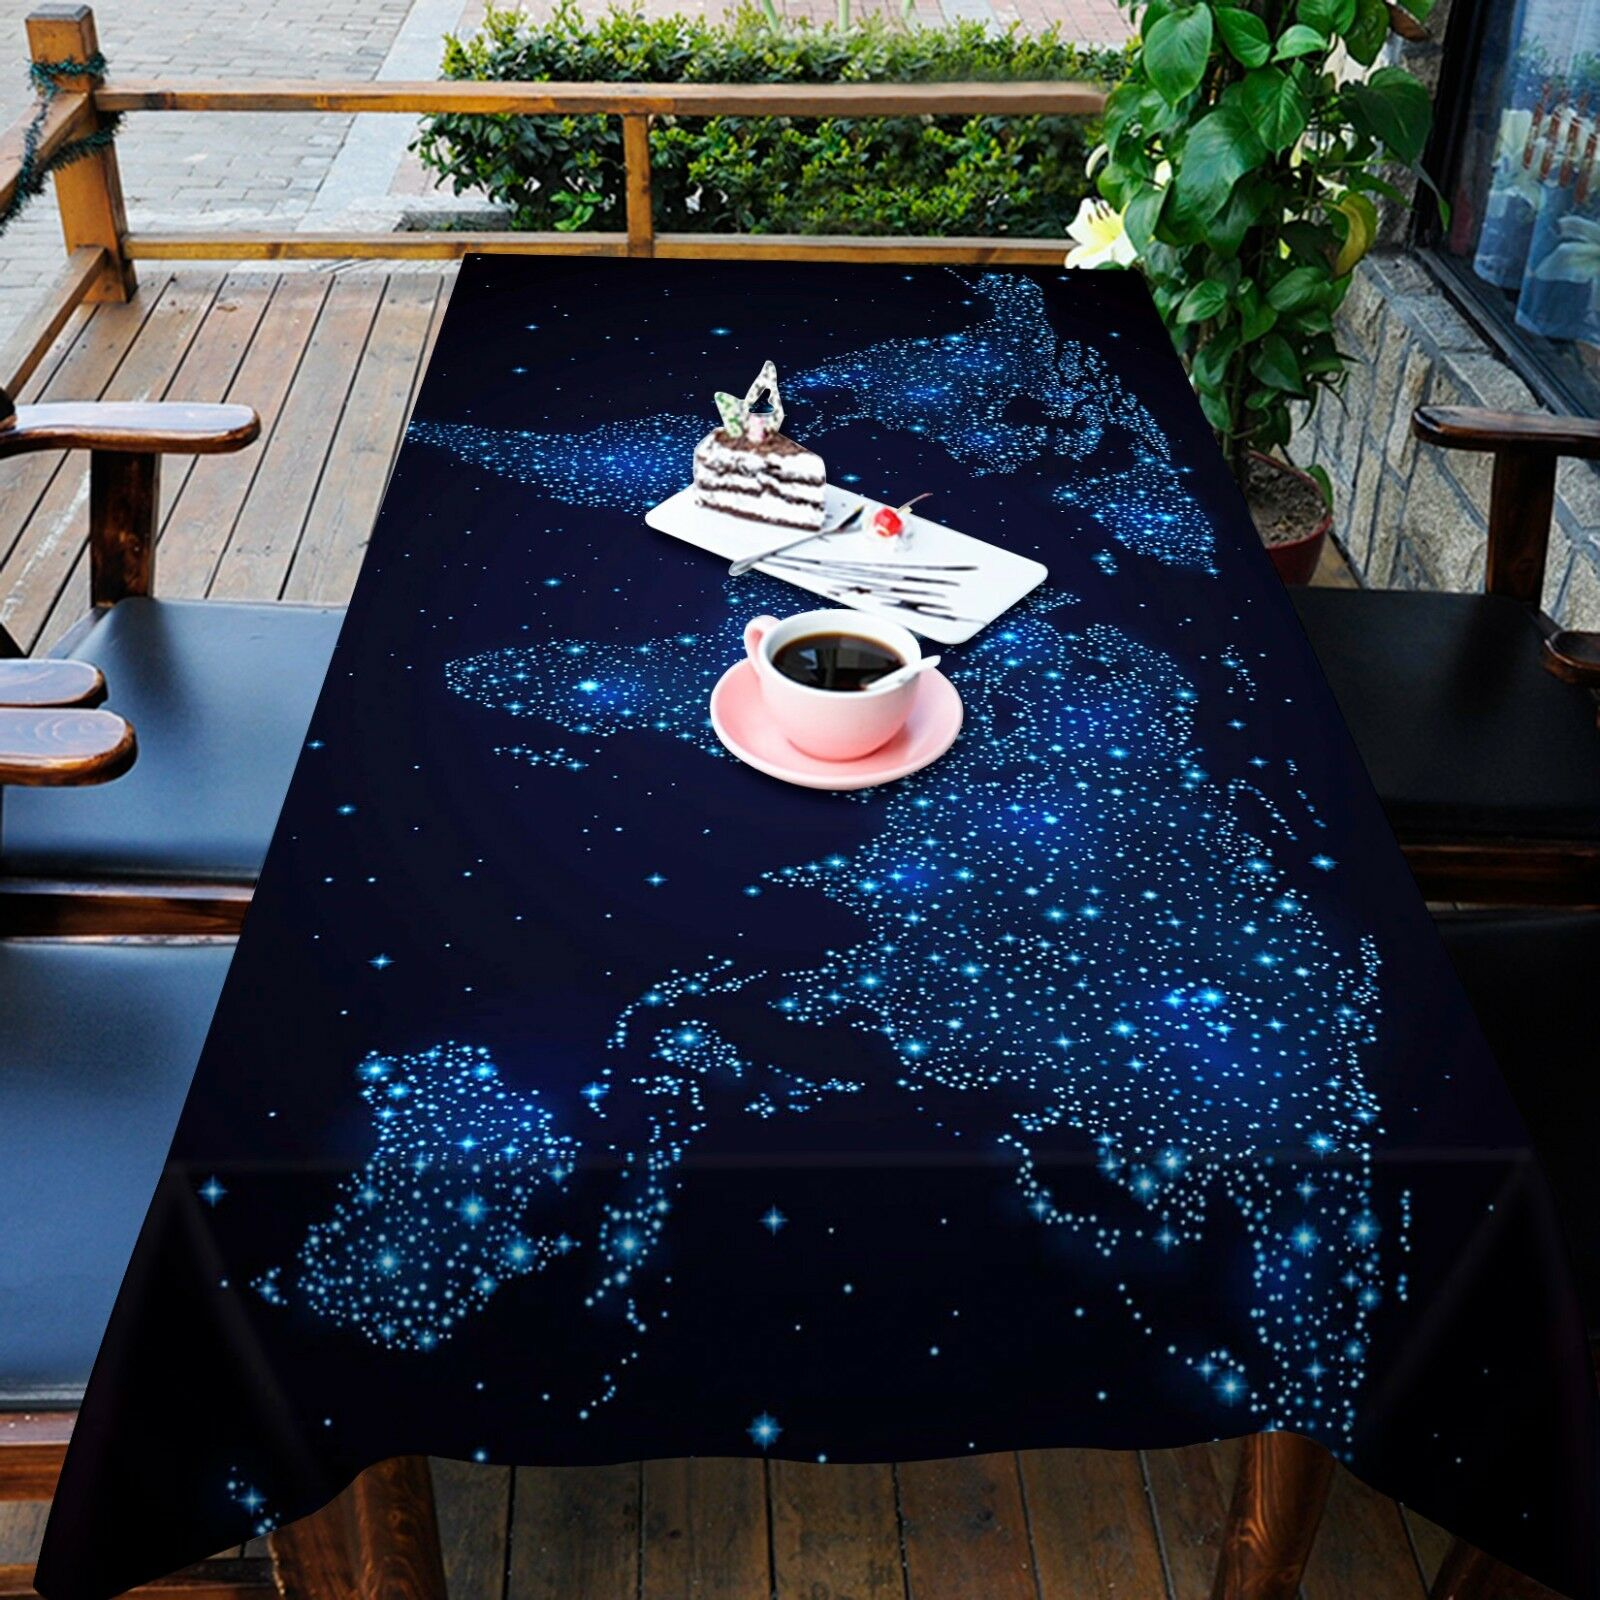 3D Image 4603 Tablecloth Table Cover Cloth Birthday Party Event AJ WALLPAPER AU